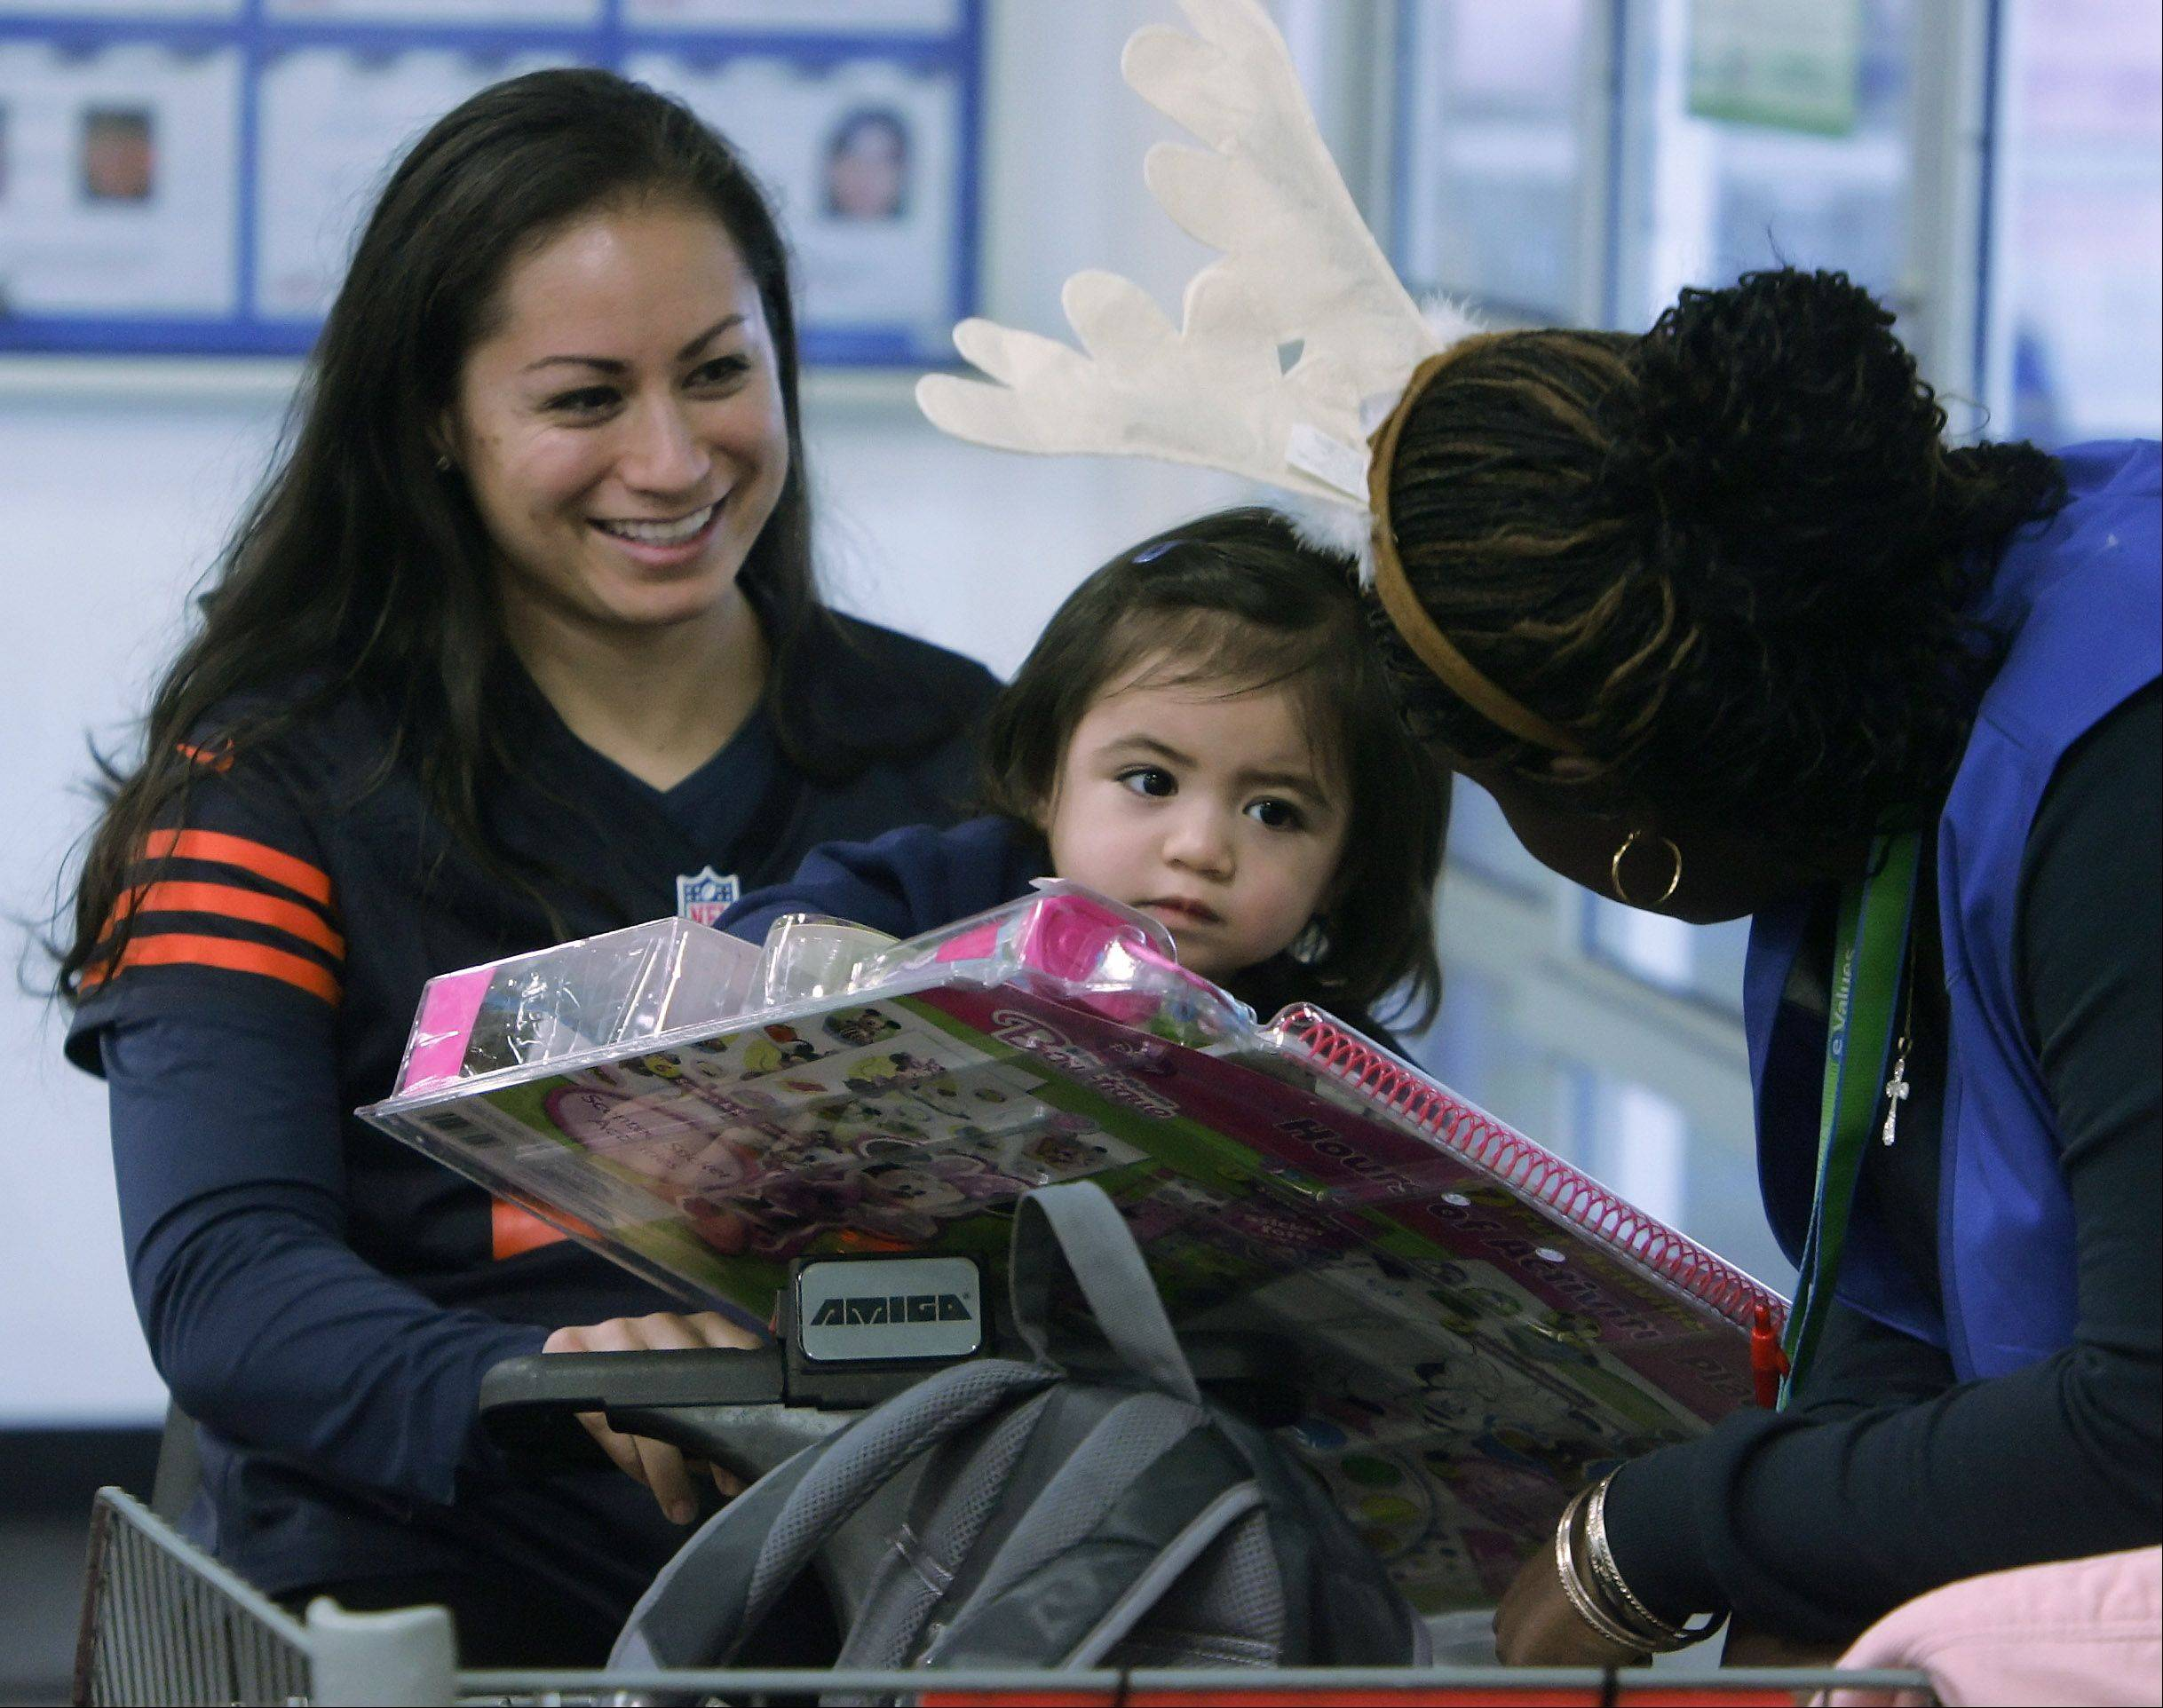 Nicole Toeiana holds her daughter, Mia, 18 months, as they talk to Sam's Club sales associate Mica Stitt while Chicago Bears players' wives shop for clothes, household products, and toys for local families in need at the Sam's Club in Vernon Hills. It's the sixth consecutive year, Sam's Club has teamed with Off The Field, a nonprofit organization comprised of Bears players wives, to help 20 families in the Chicago area selected by the Salvation Army during the holiday season. Nicole is the wife of Bear Matt Toeiana.